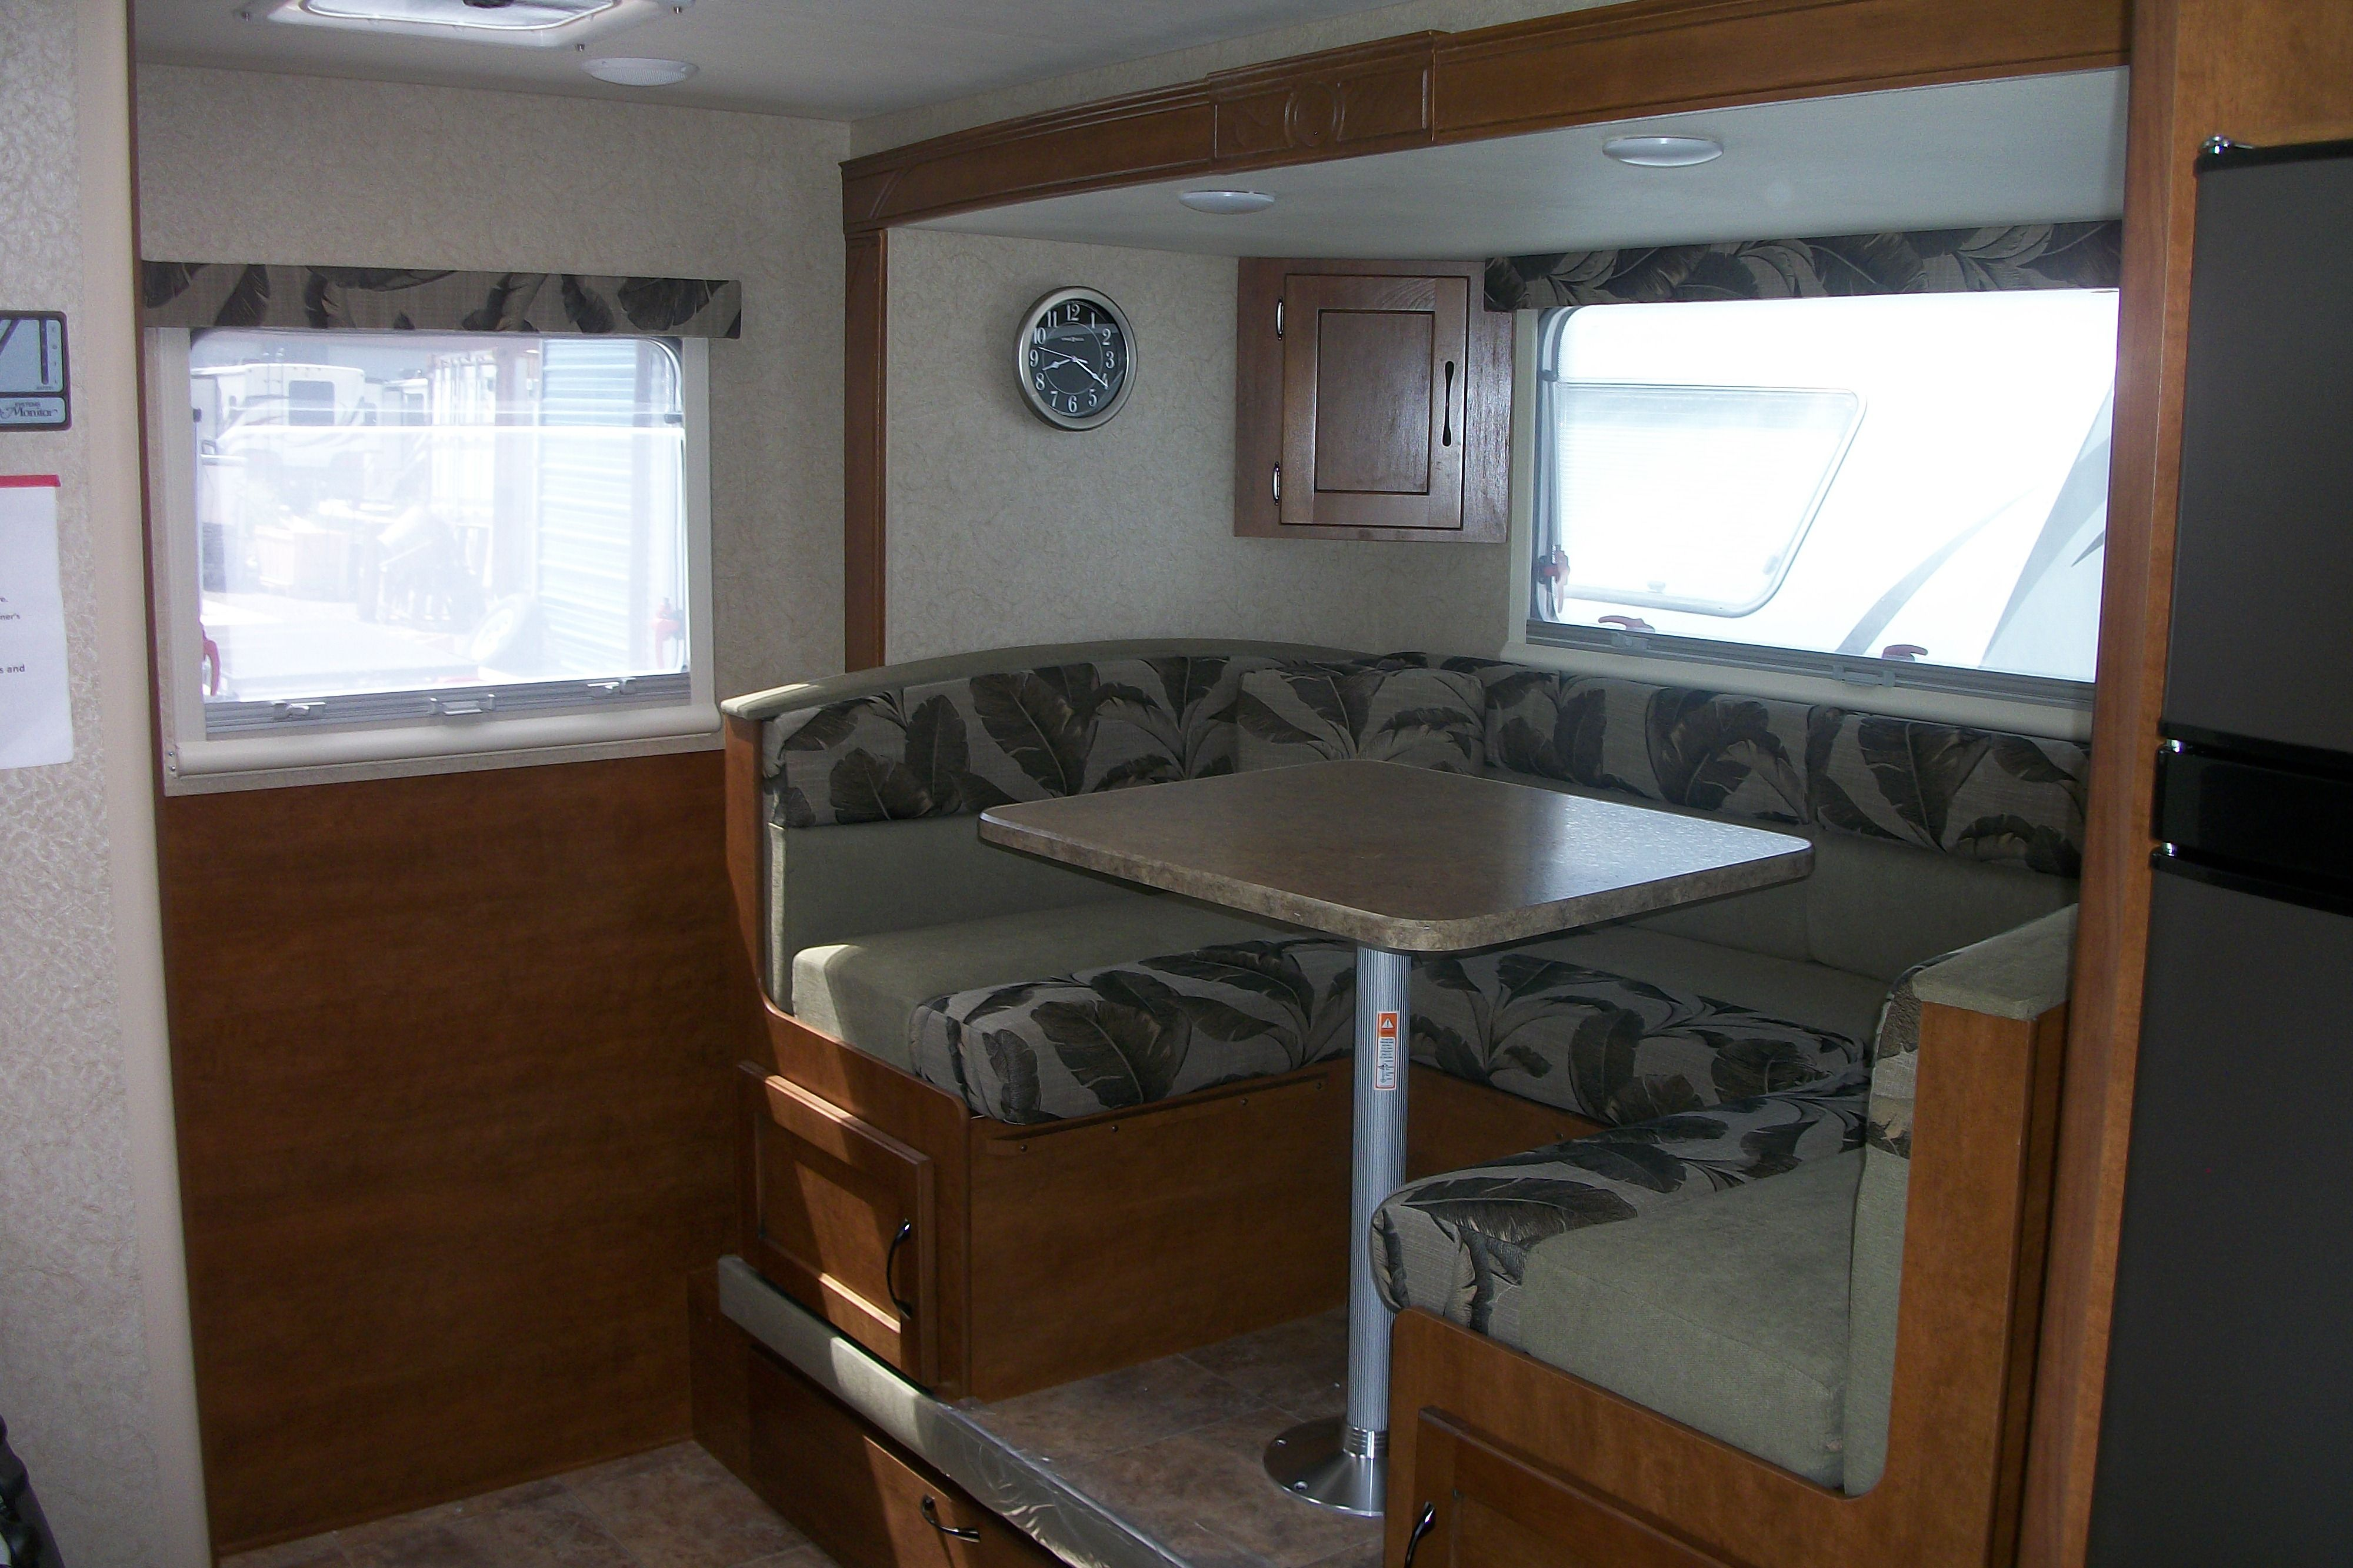 NEW 2016 LANCE 1575 all new options and standard features